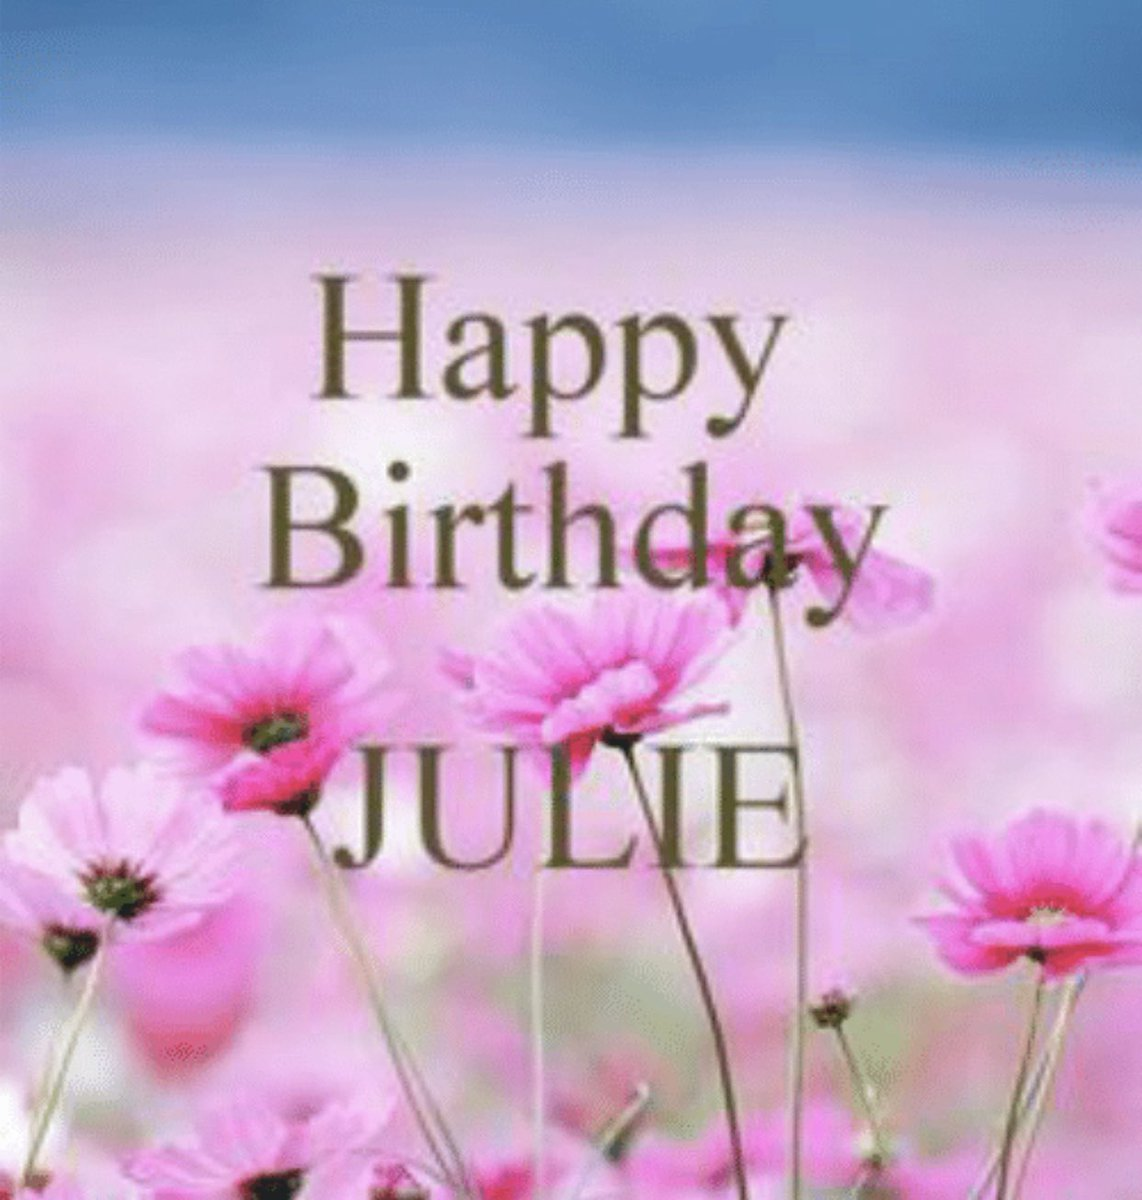 Join me in Wishing @Julie_McWeirdo a very Happy Birthday 🎂 #April4th Happy Birth Month! Stay Safe ❤️❤️❤️❤️